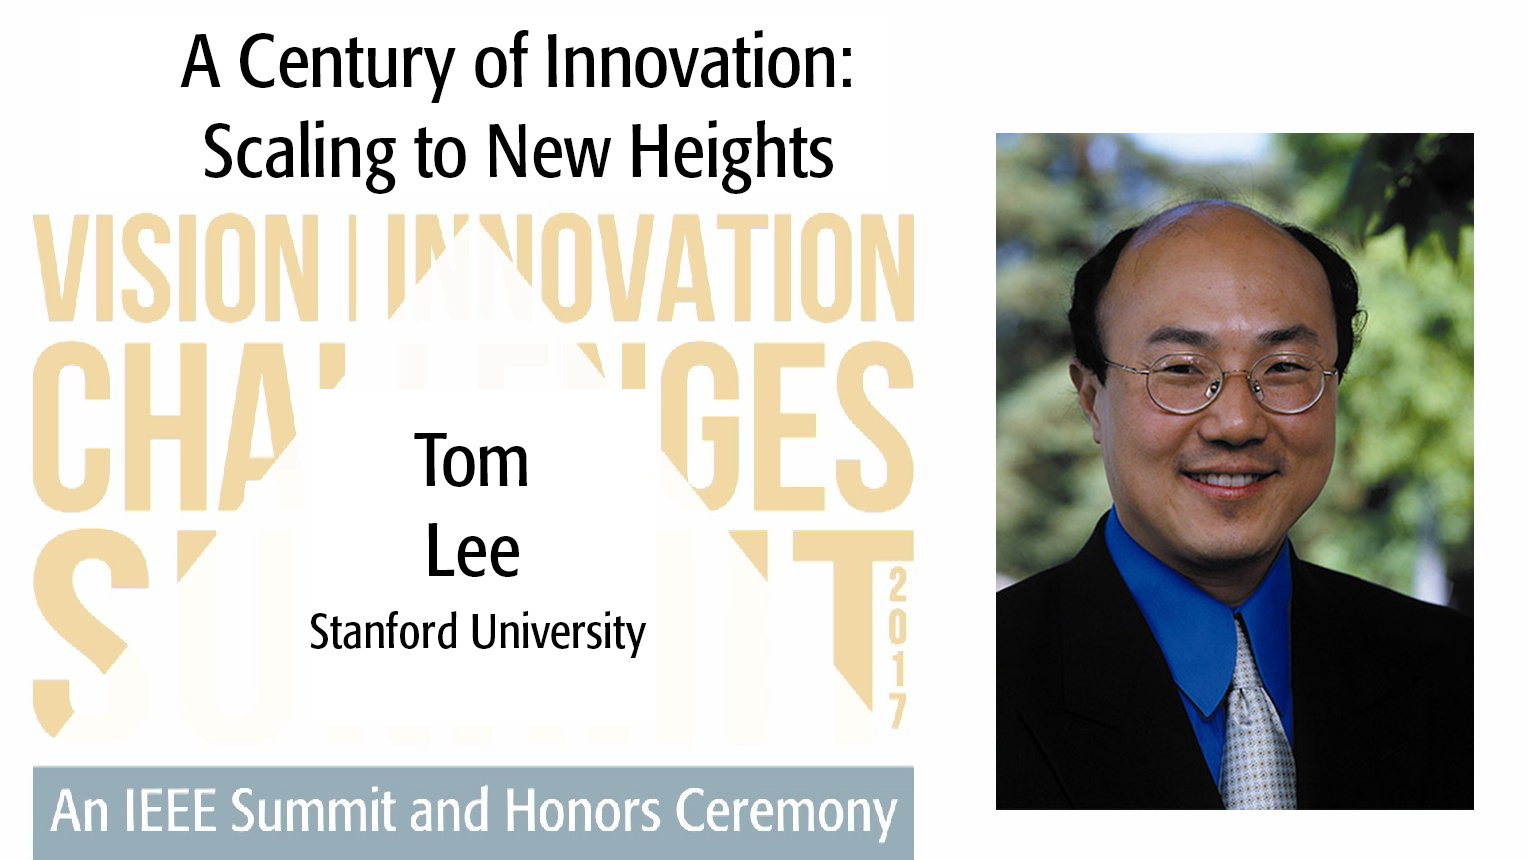 Tom Lee - A Century of Innovation: Scaling to new Heights (2017 VIC Summit)